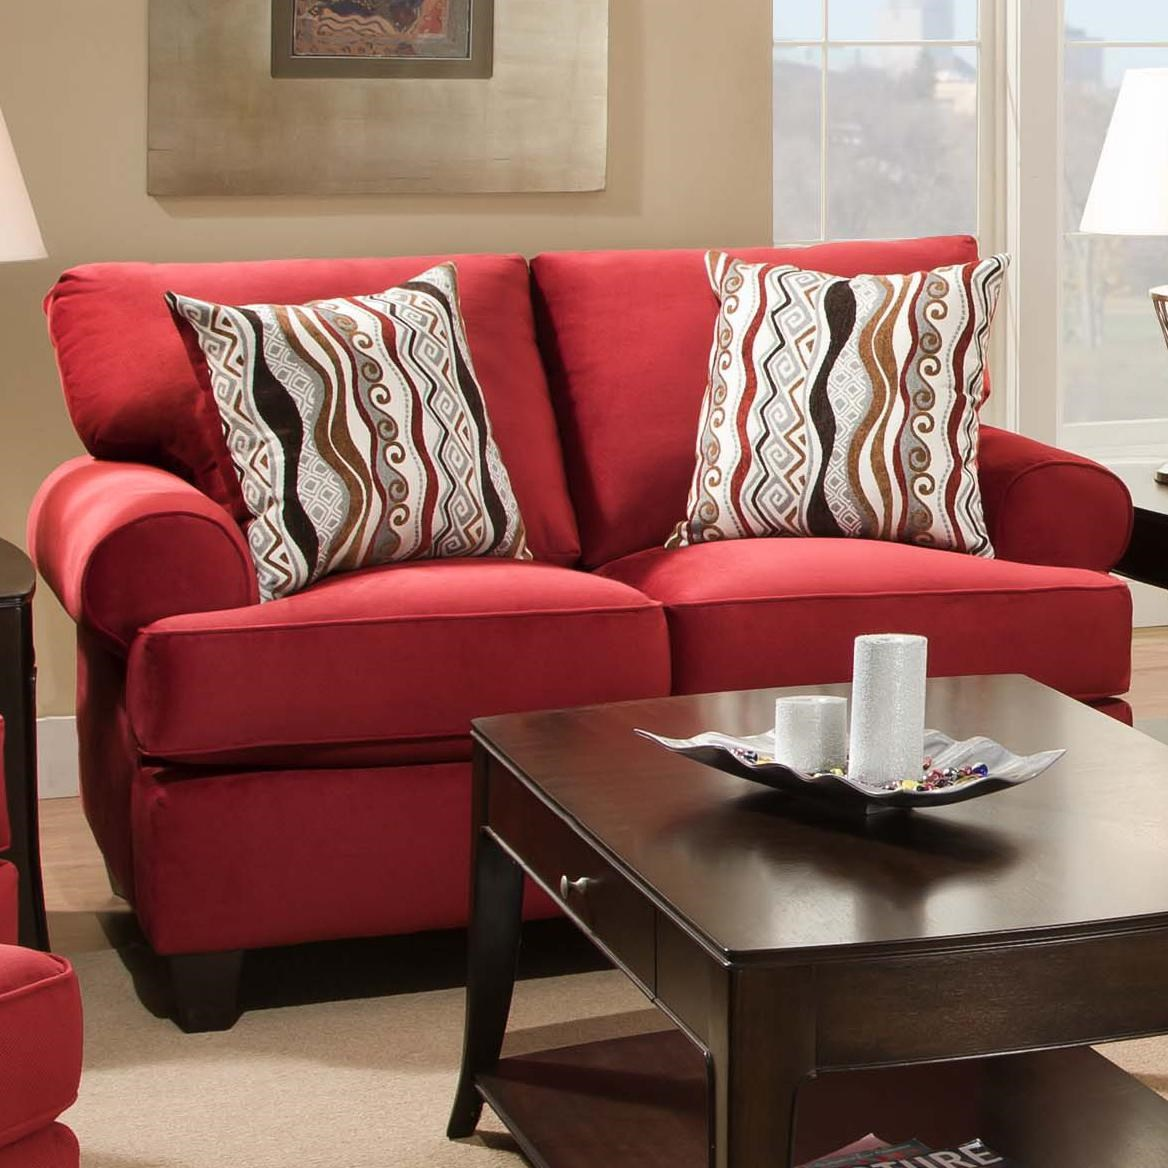 Contemporary living room couches Modern Furniture Corinthian Jackpot Red Casual And Contemporary Living Room Loveseat Great American Home Store Corinthian Jackpot Red 47b2 Casual And Contemporary Living Room